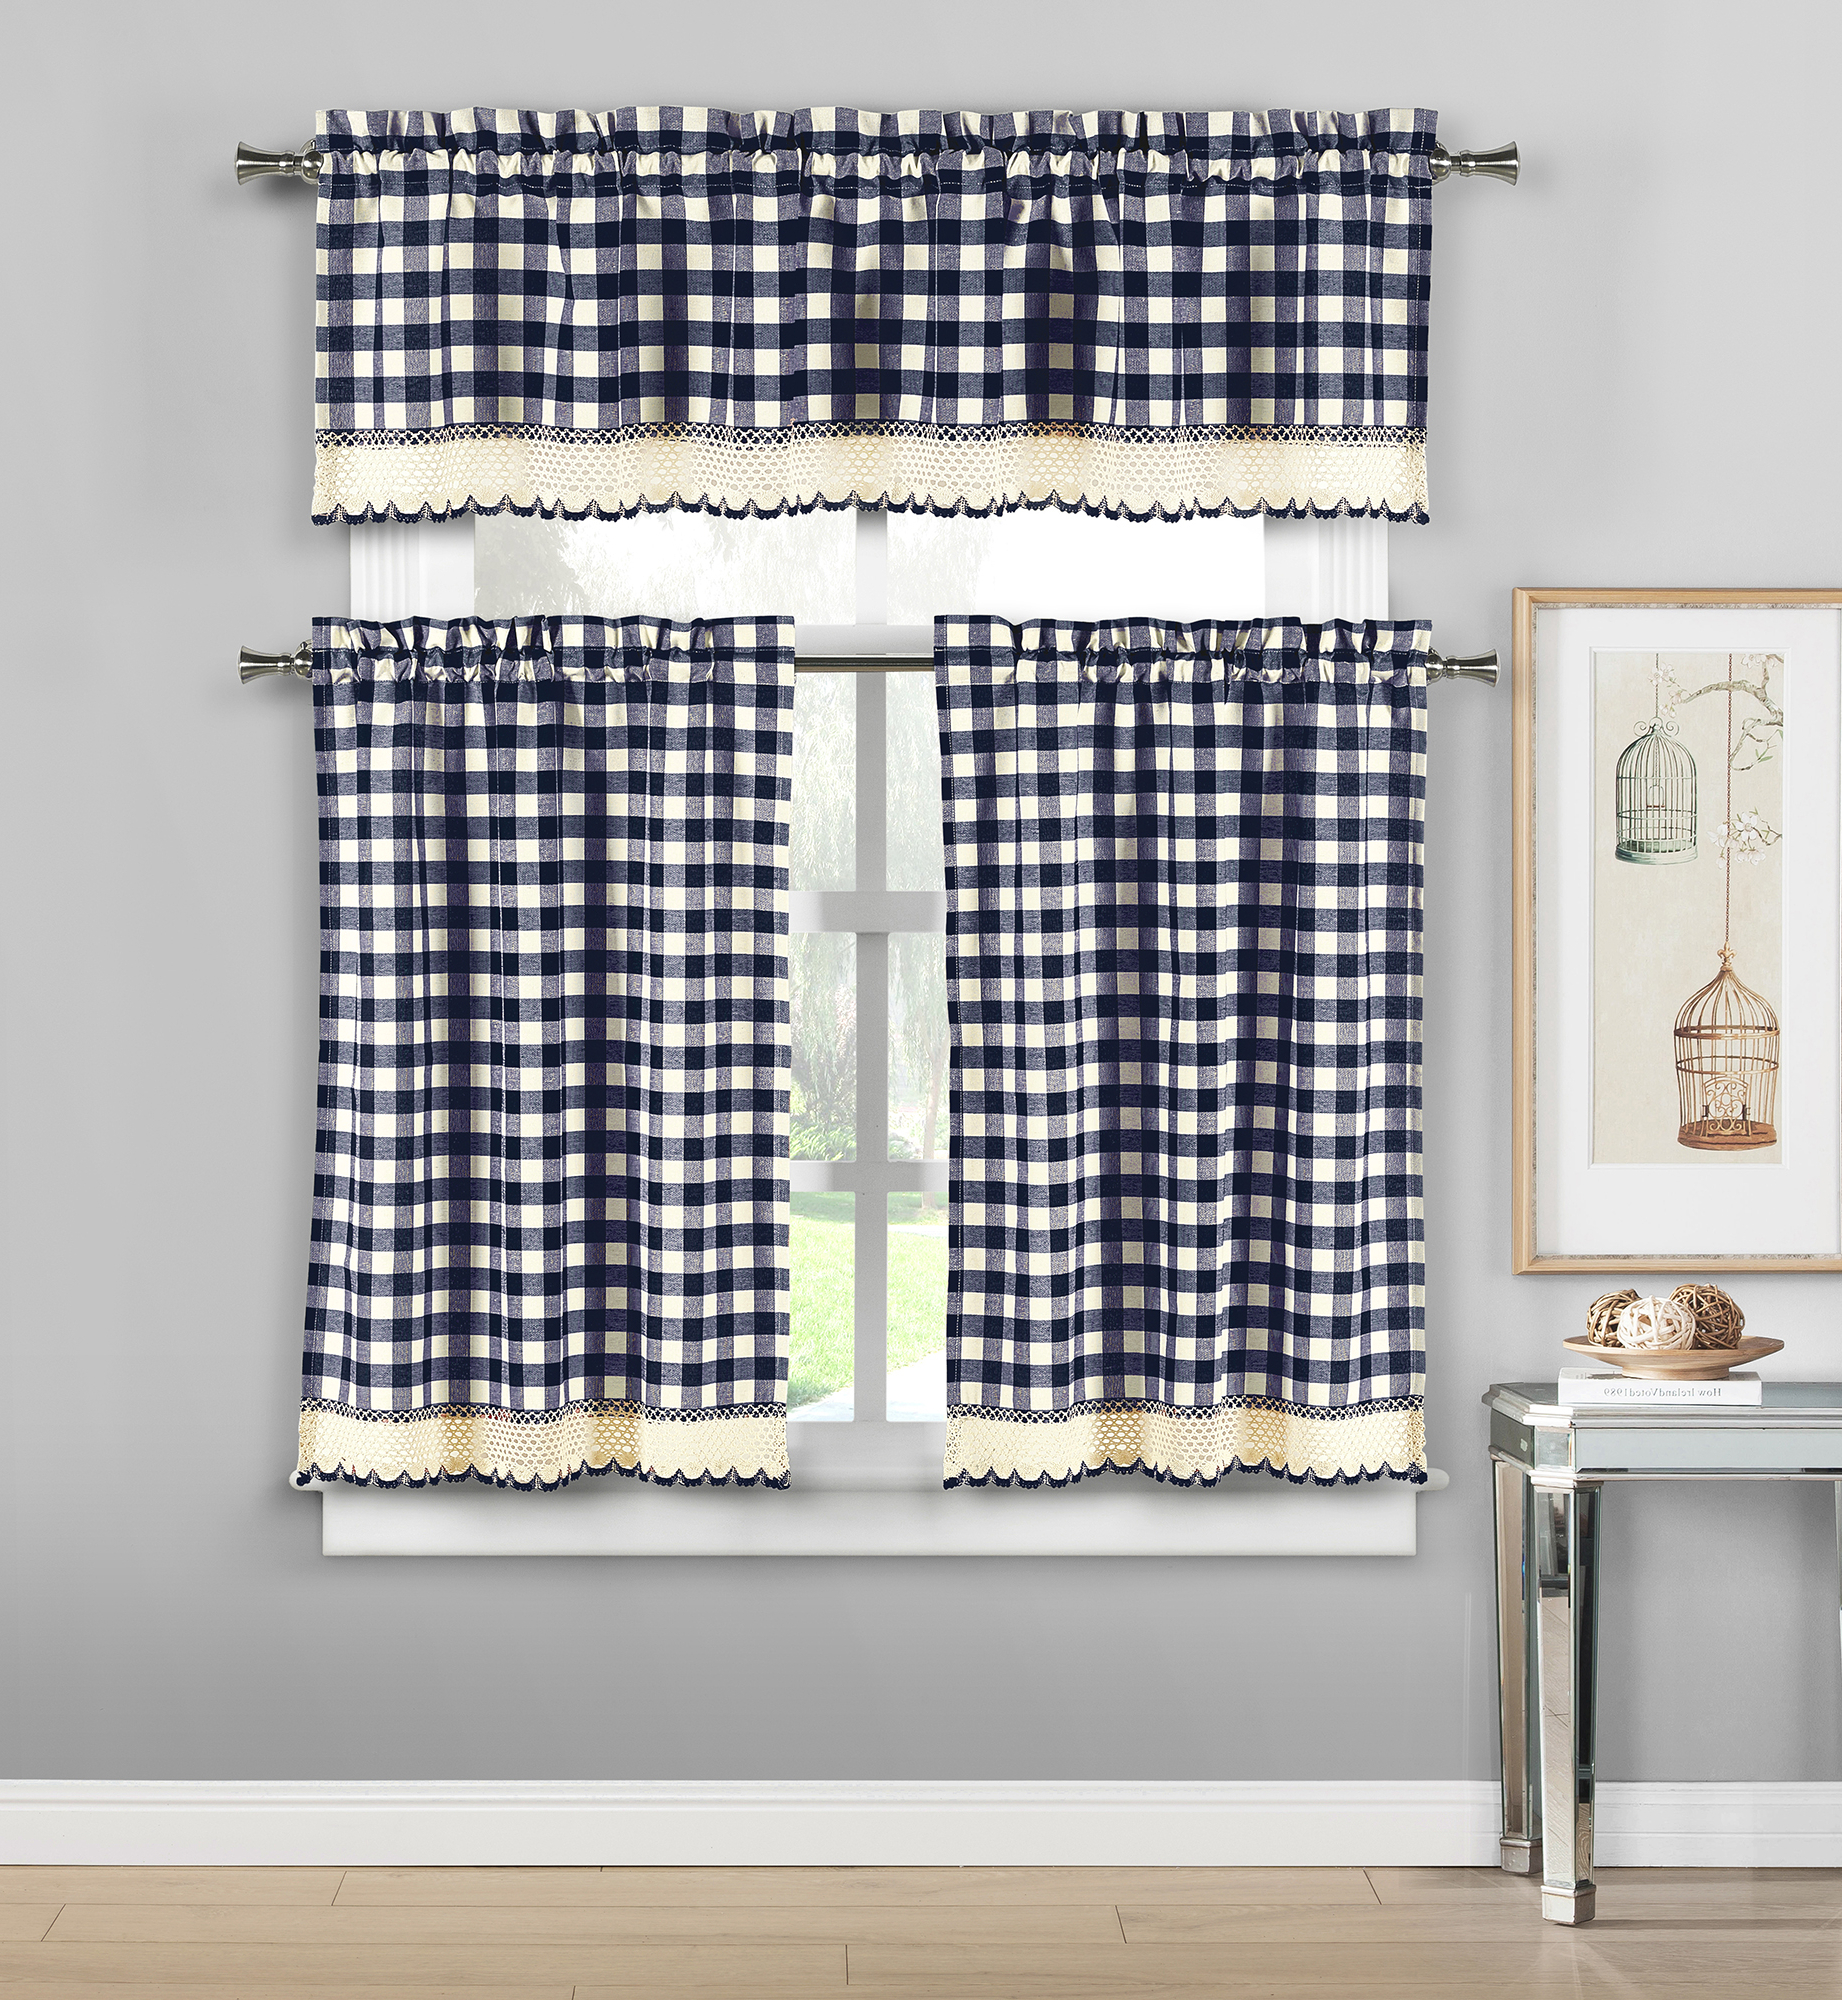 Best And Newest Details About Plaid Checkered Crochet Cotton Blend 3Pc Window Curtain  Kitchen Tier & Valance Regarding Cotton Blend Grey Kitchen Curtain Tiers (View 3 of 20)